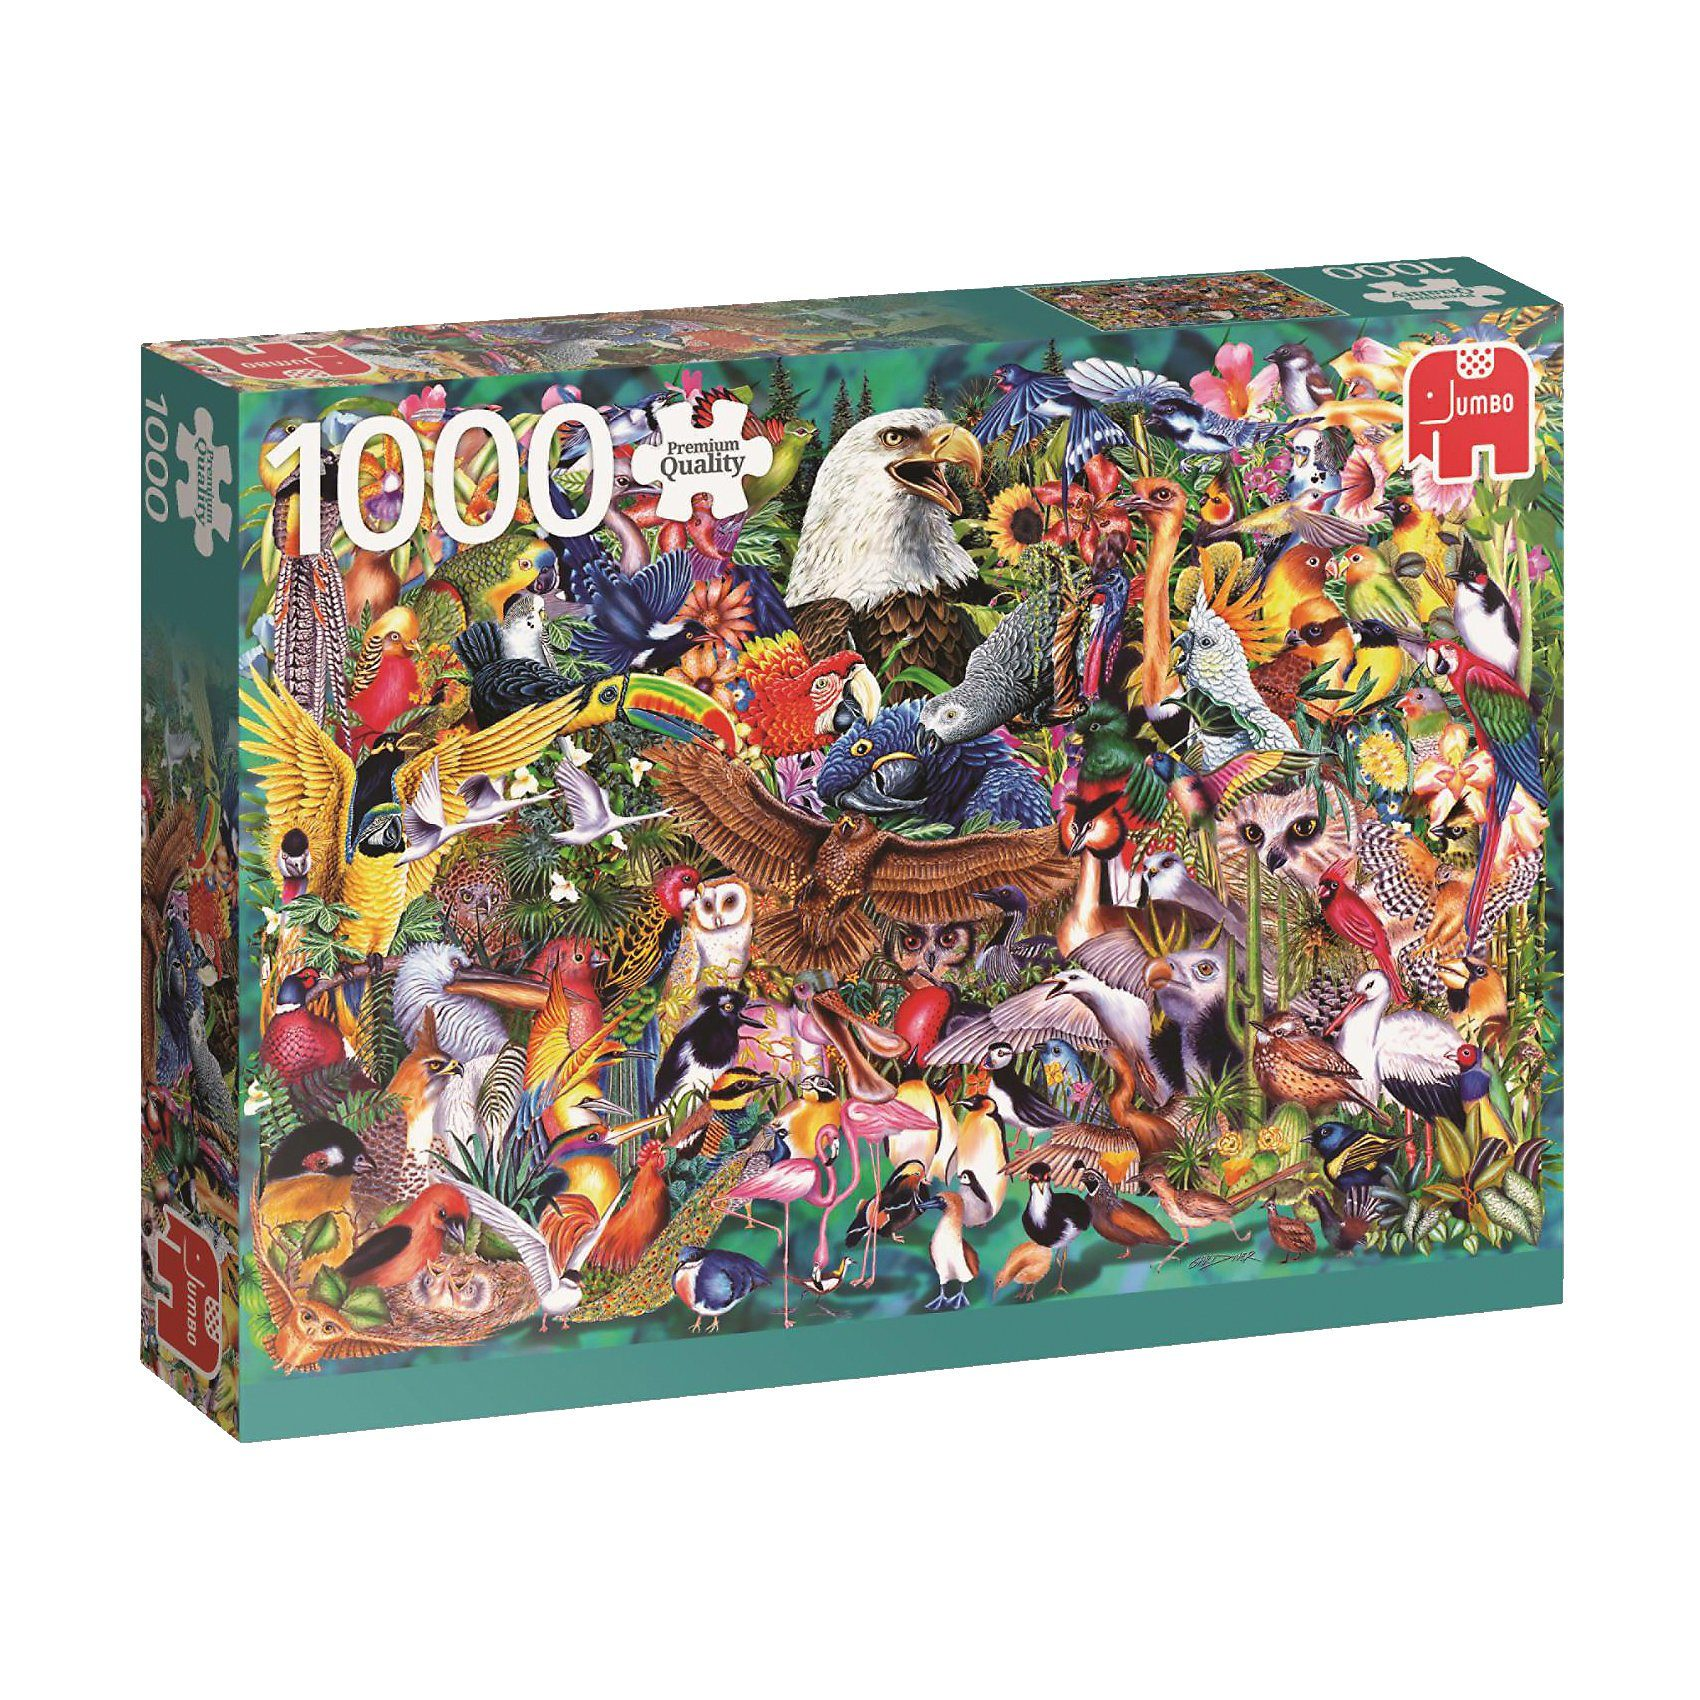 Jumbo Puzzle 1000 Teile - Animal Kingdom